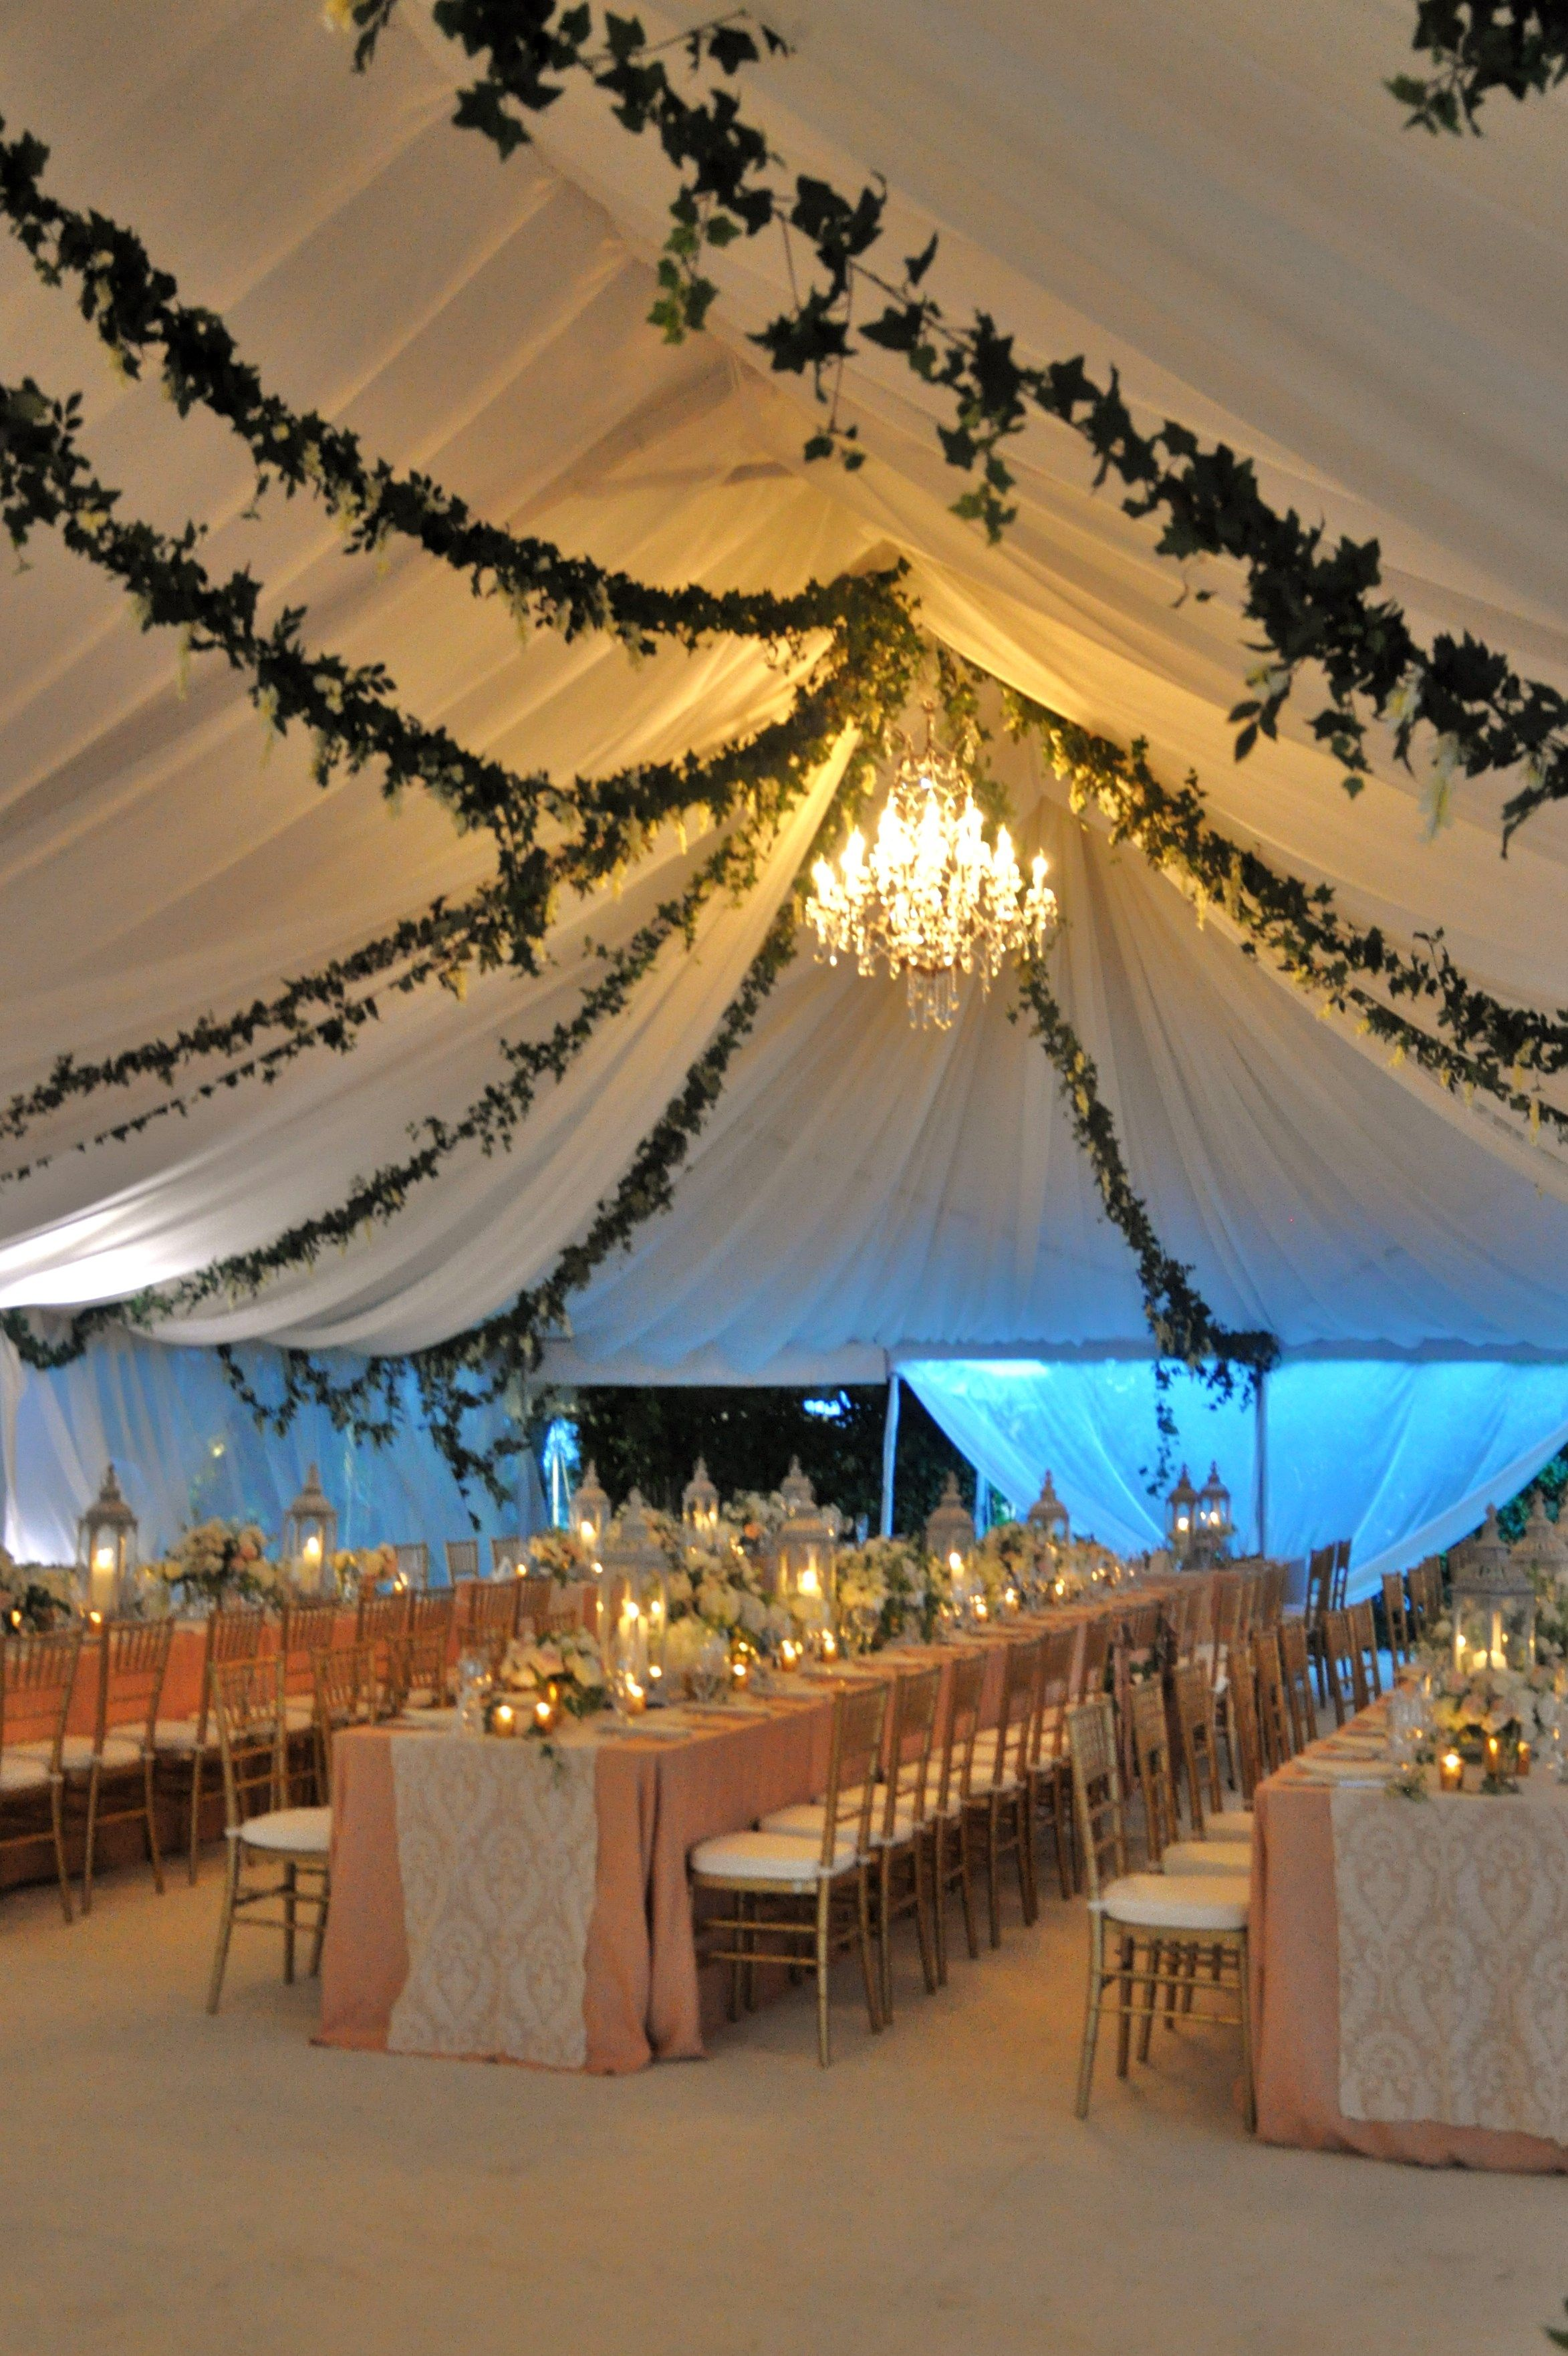 tent decor hanging vines and large crystal chandeliers pale pink linen overlays with ivory lace table runners and accented with gold glass holders and